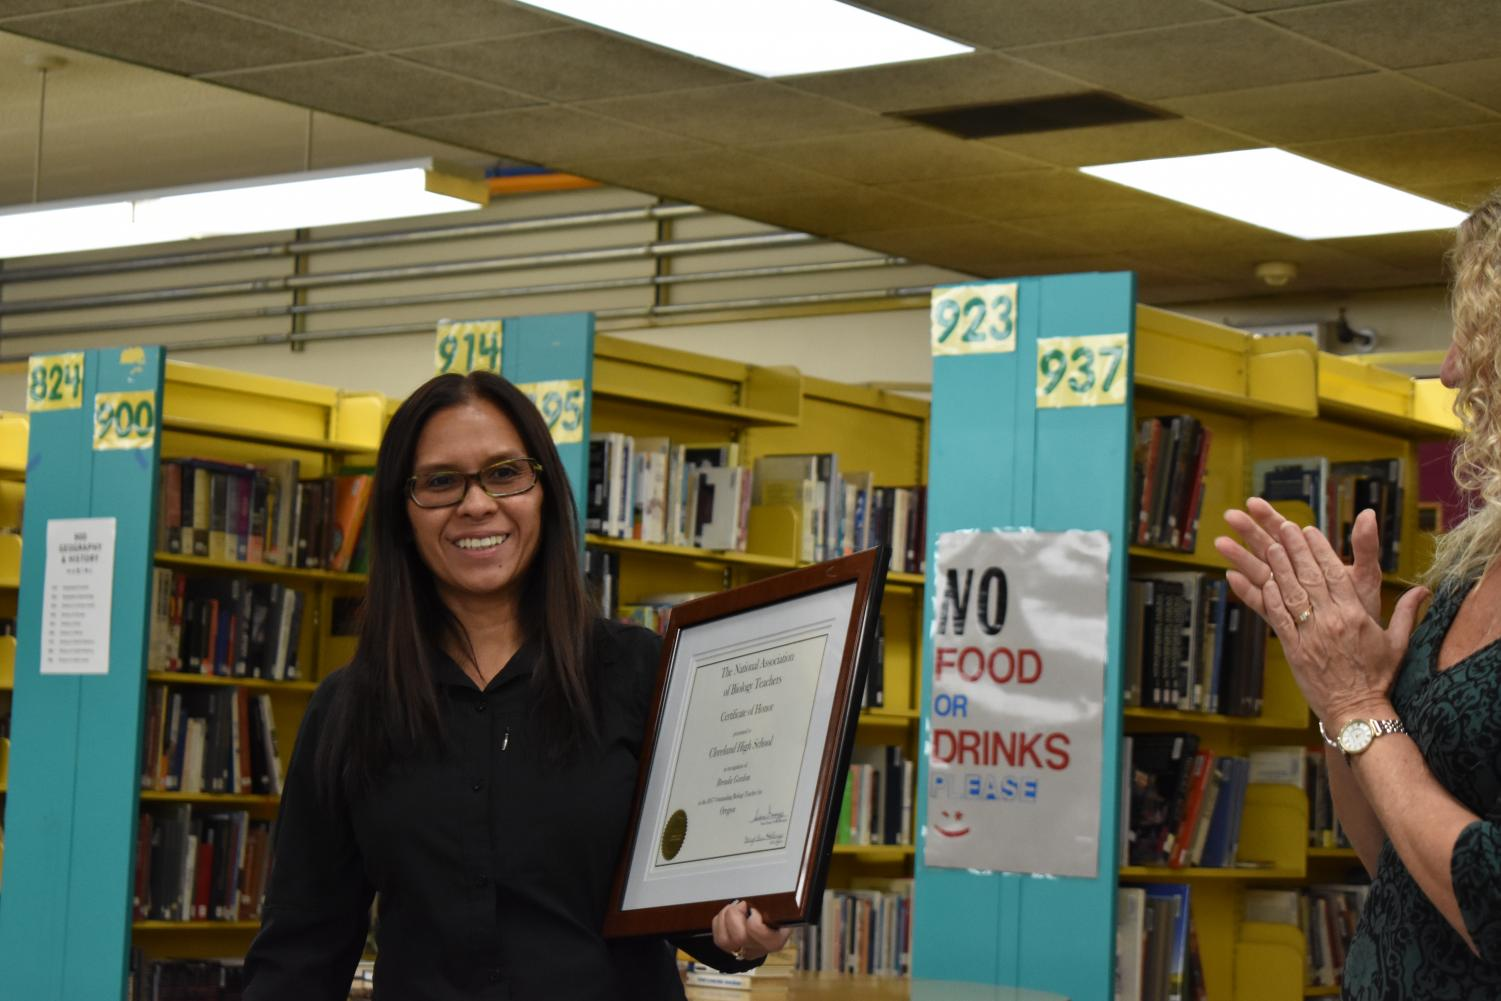 Biology teacher Brenda Gordon was honored Oct. 31 after school in the library in recognition for winning the state Biology teacher of the year.